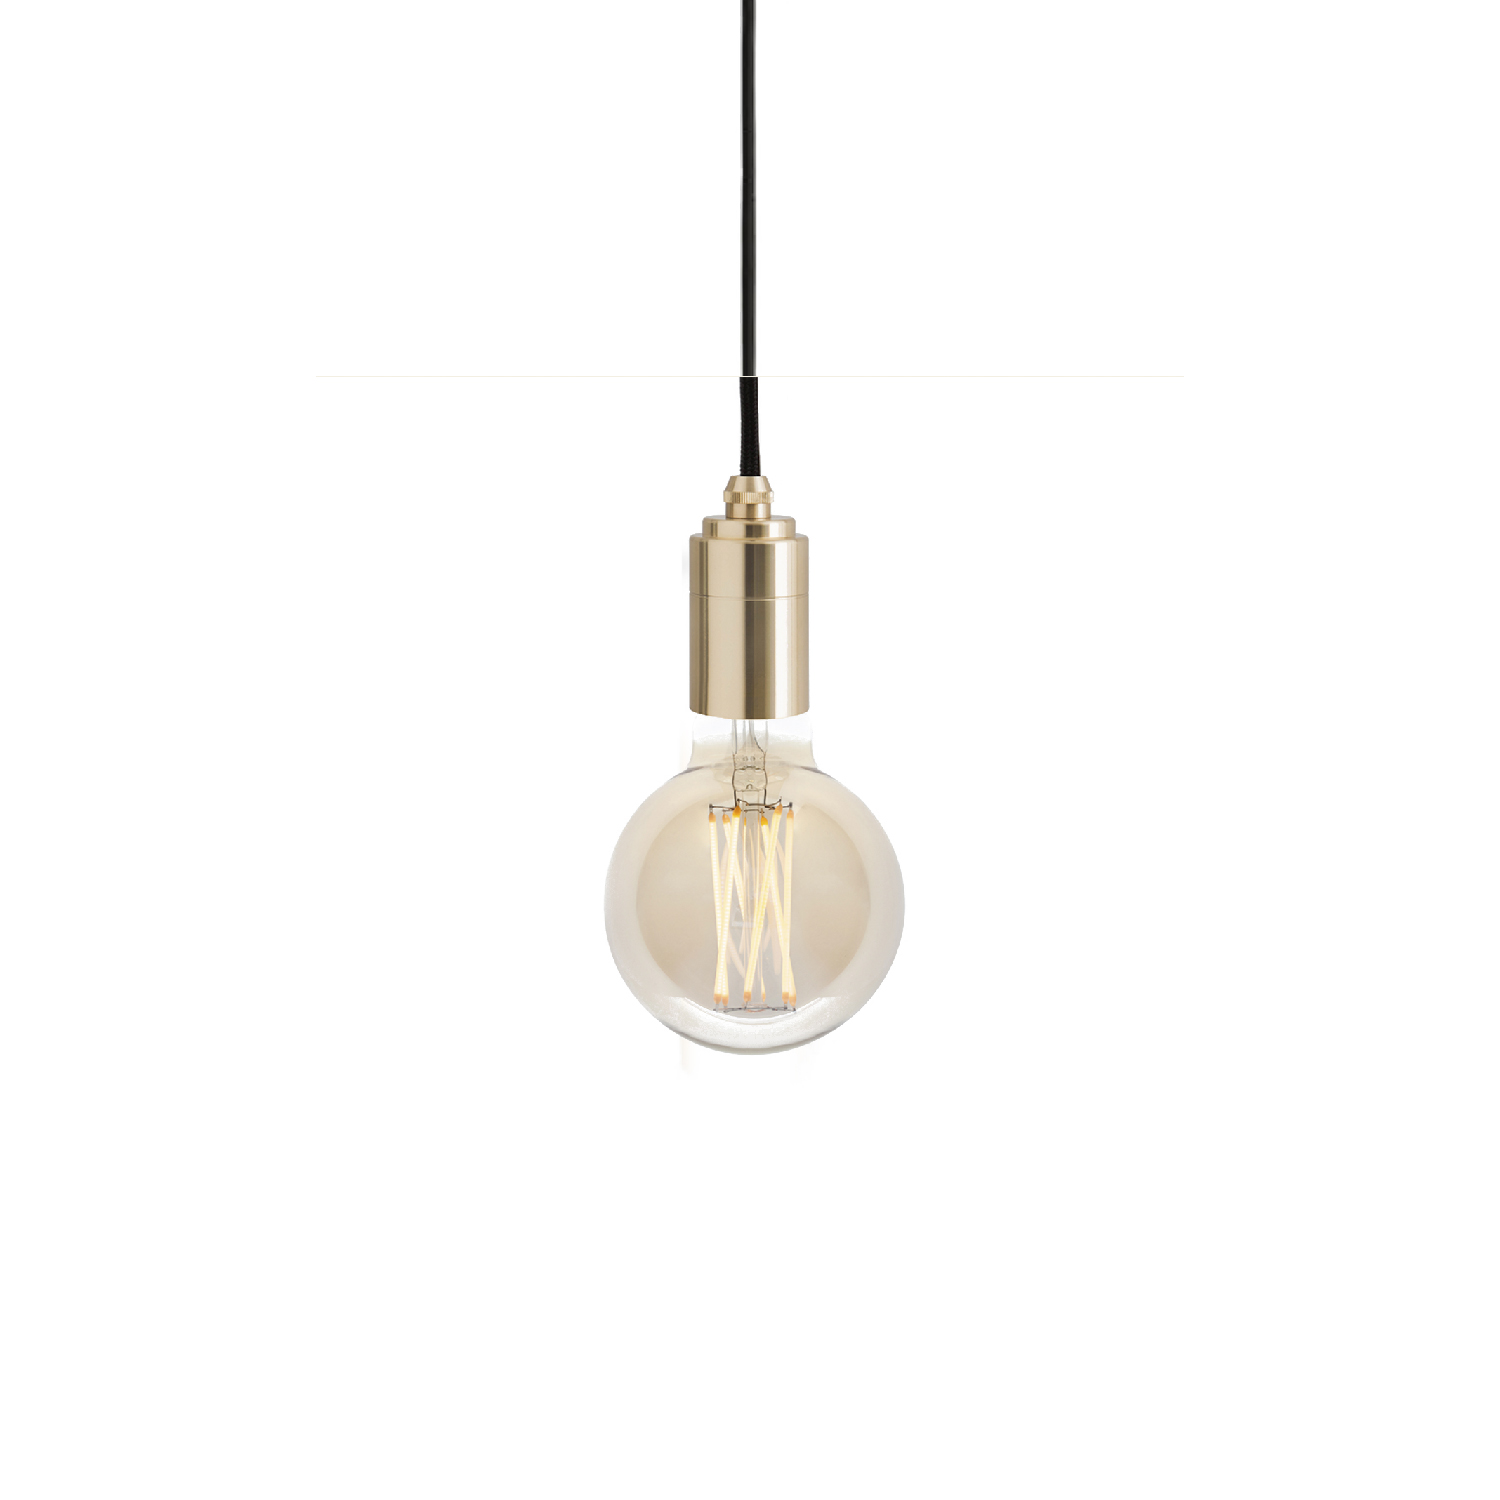 Elva Pendant Light - The Elva Pendant Light combines the compact, exposed-filament Elva bulb with a single hanging pendant to create a ready-made light fixture for any interior space.  Available in tinted or non-tinted glass, the Elva Pendant Light is perfect for hanging in the centre of a room or hallway, above an island or as a decorative feature. The phosphor-coated filaments and iron-tinted glass create a warm, amber glow to add atmosphere, while the clear glass version offers a brighter light output for functional spaces.  Available with the Brass, Graphite, Oak or Walnut pendant.  Features – Dimmable – Stylish lighting fixture – Energy-efficient, LED technology – Exposed filament bulb design – Available with a Brass, Graphite, Oak or Walnut pendant – 3 metre length cord for versatility | Matter of Stuff